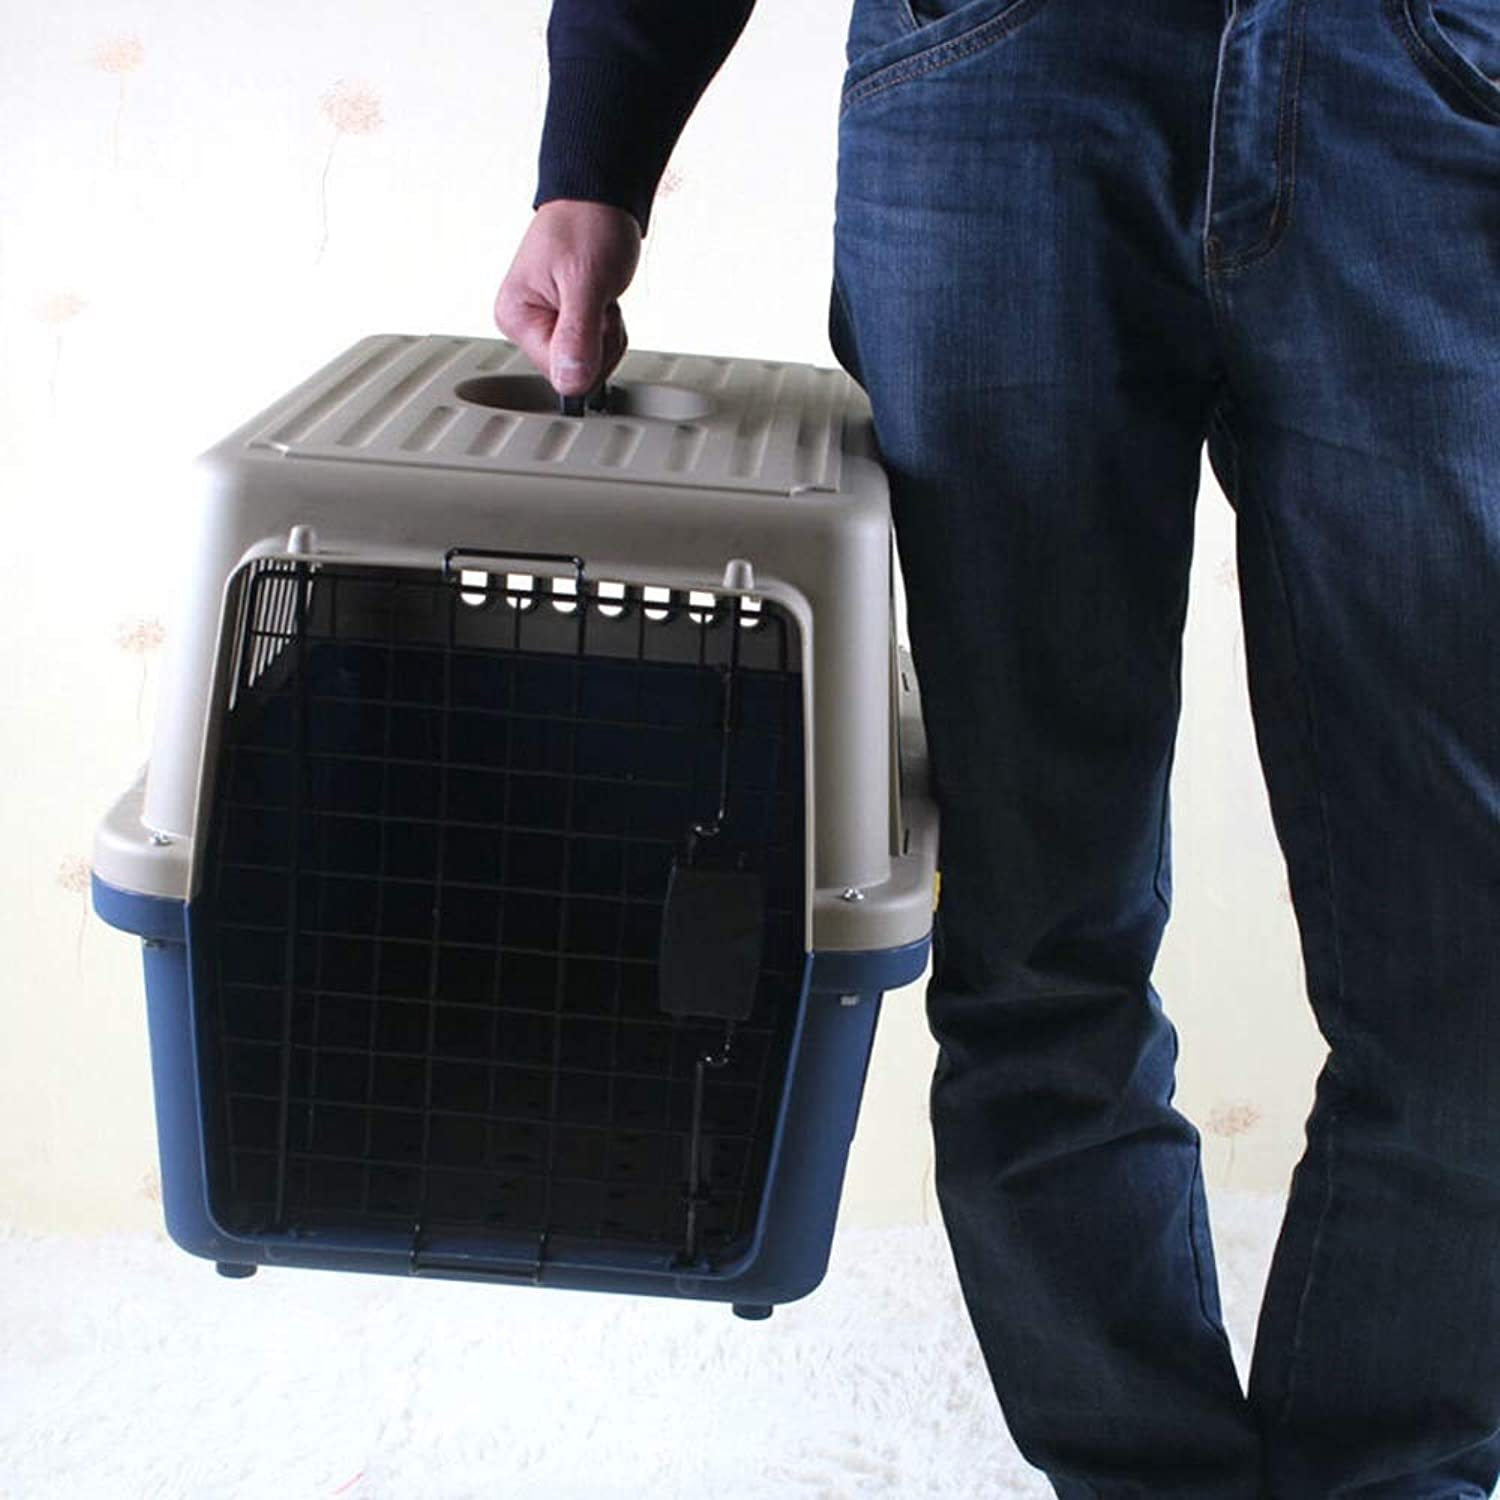 MEI GU Pet Bag  air Box Thickening pet air Box Dog cat Consignment Box pet cage Outing Supplies Pet Supplies